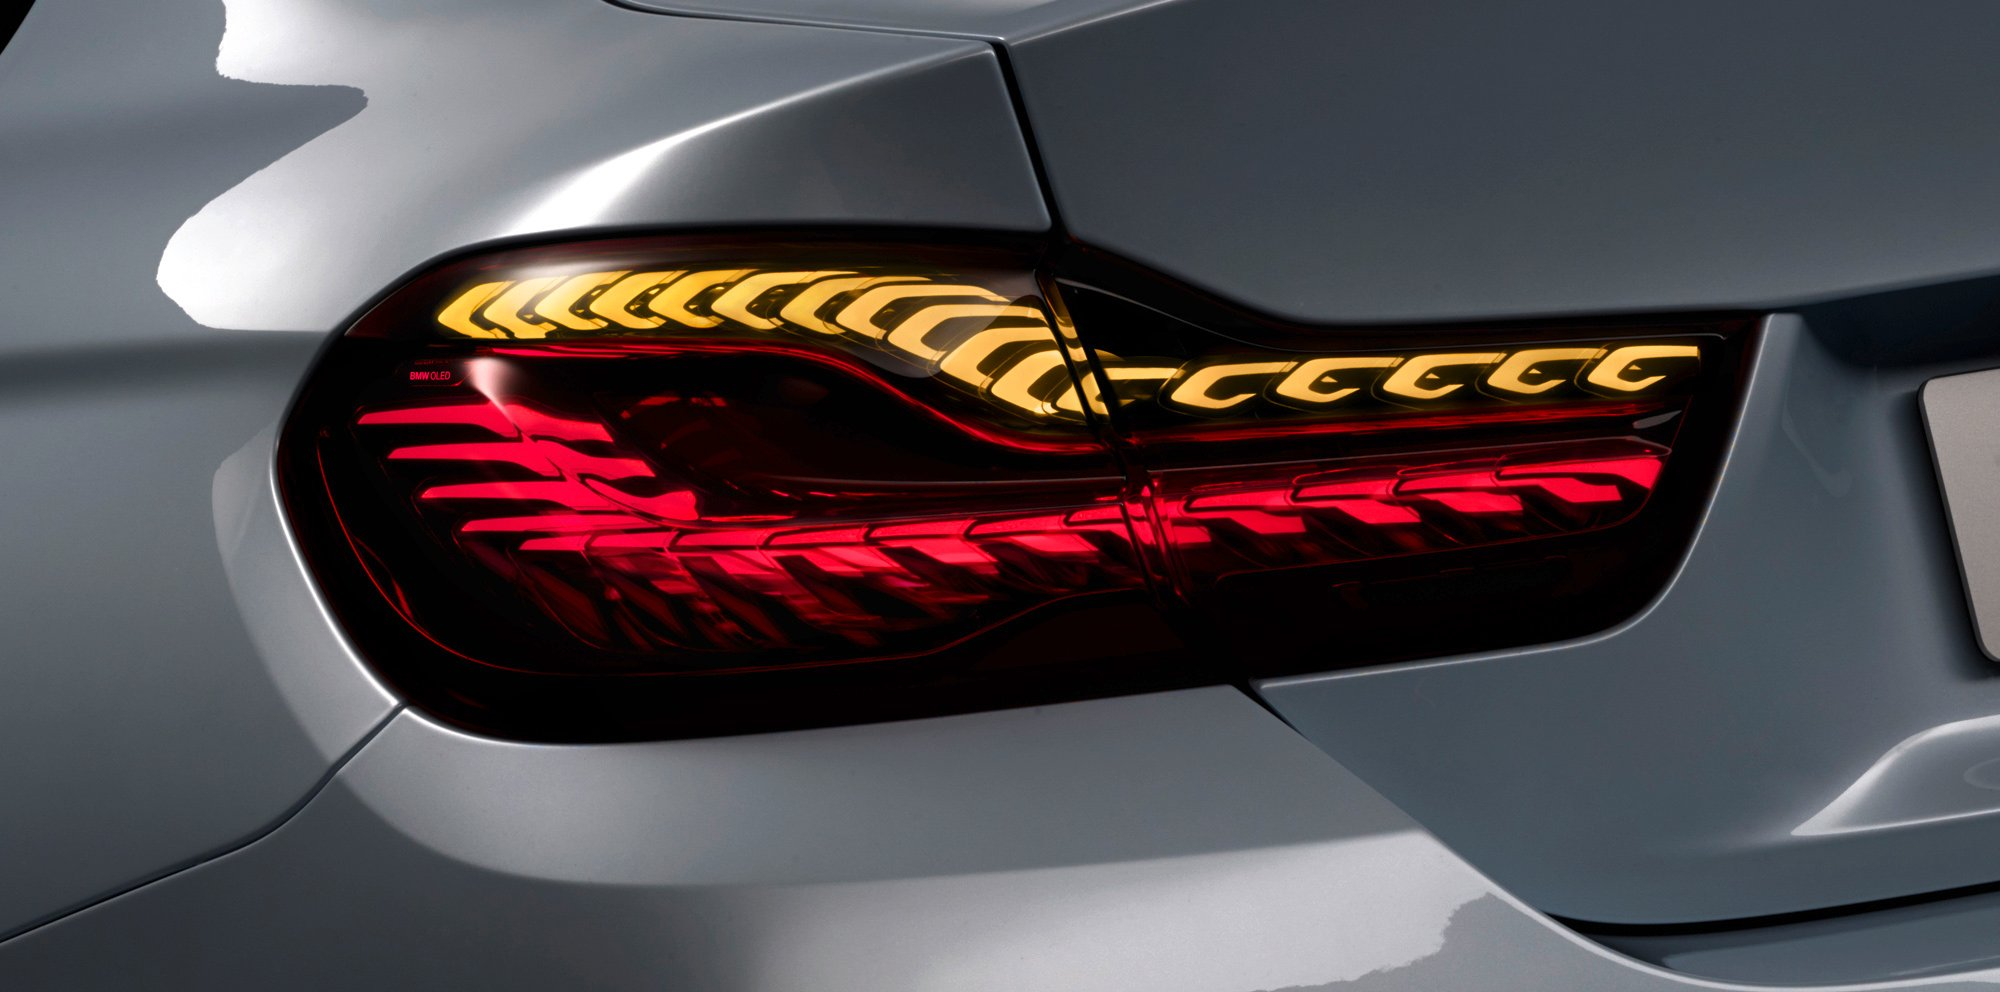 Bmw M4 Iconic Lights Concept Debuts Laser Headlights With